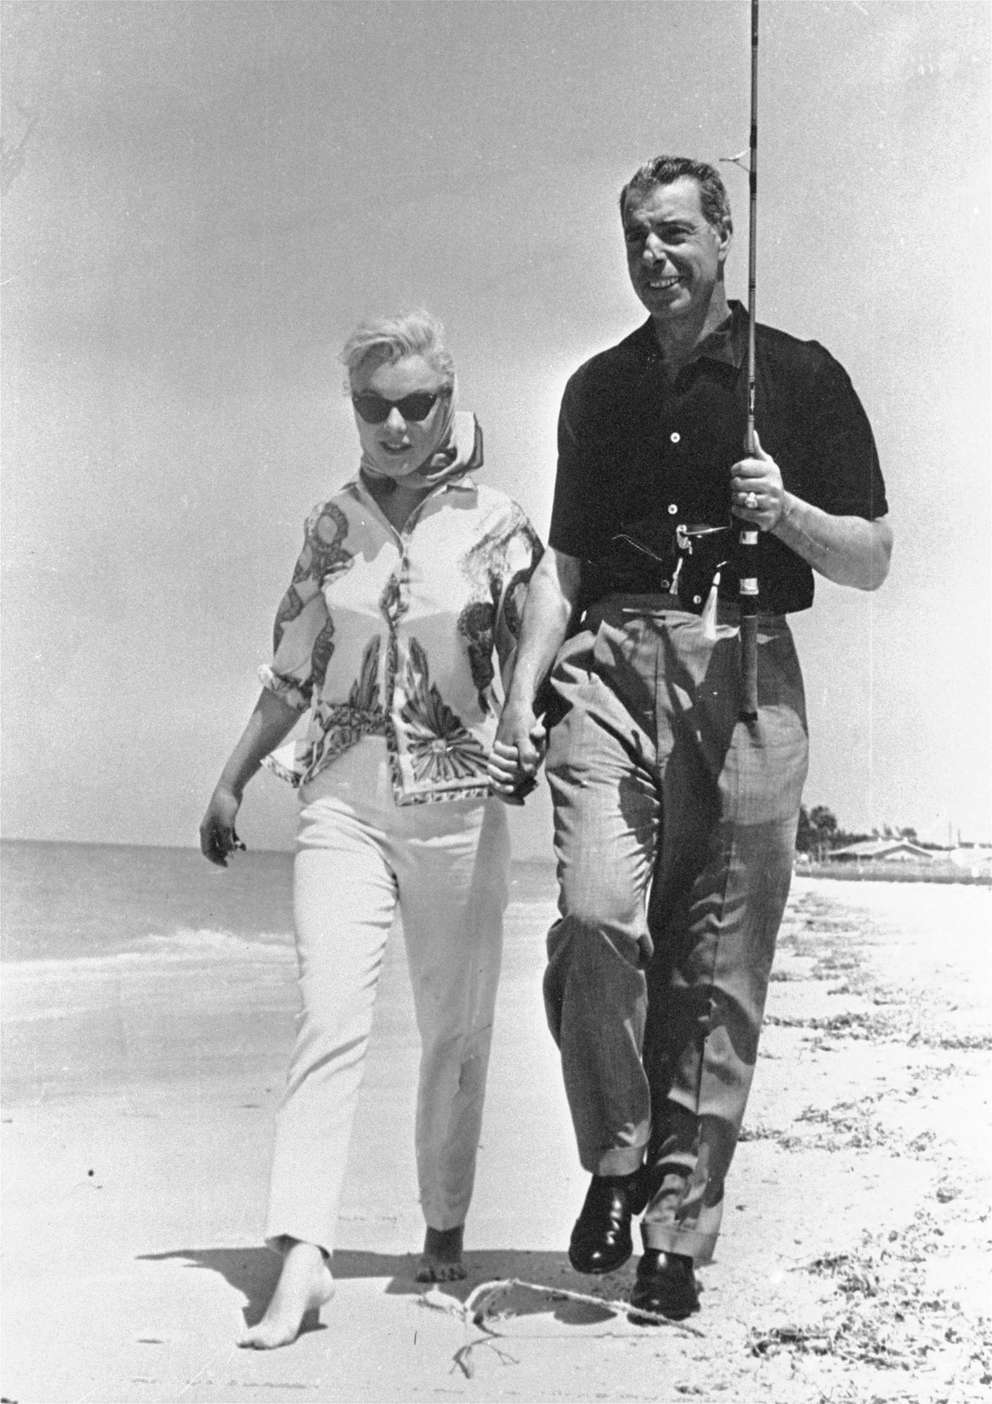 A March 1961 photo shows actress Marilyn Monroe and ex-husband, former New York Yankee ball player Joe DiMaggio, happily walk the shores of the Gulf of Mexico as they enjoy a day together at Bellaire, Florida. [AP]